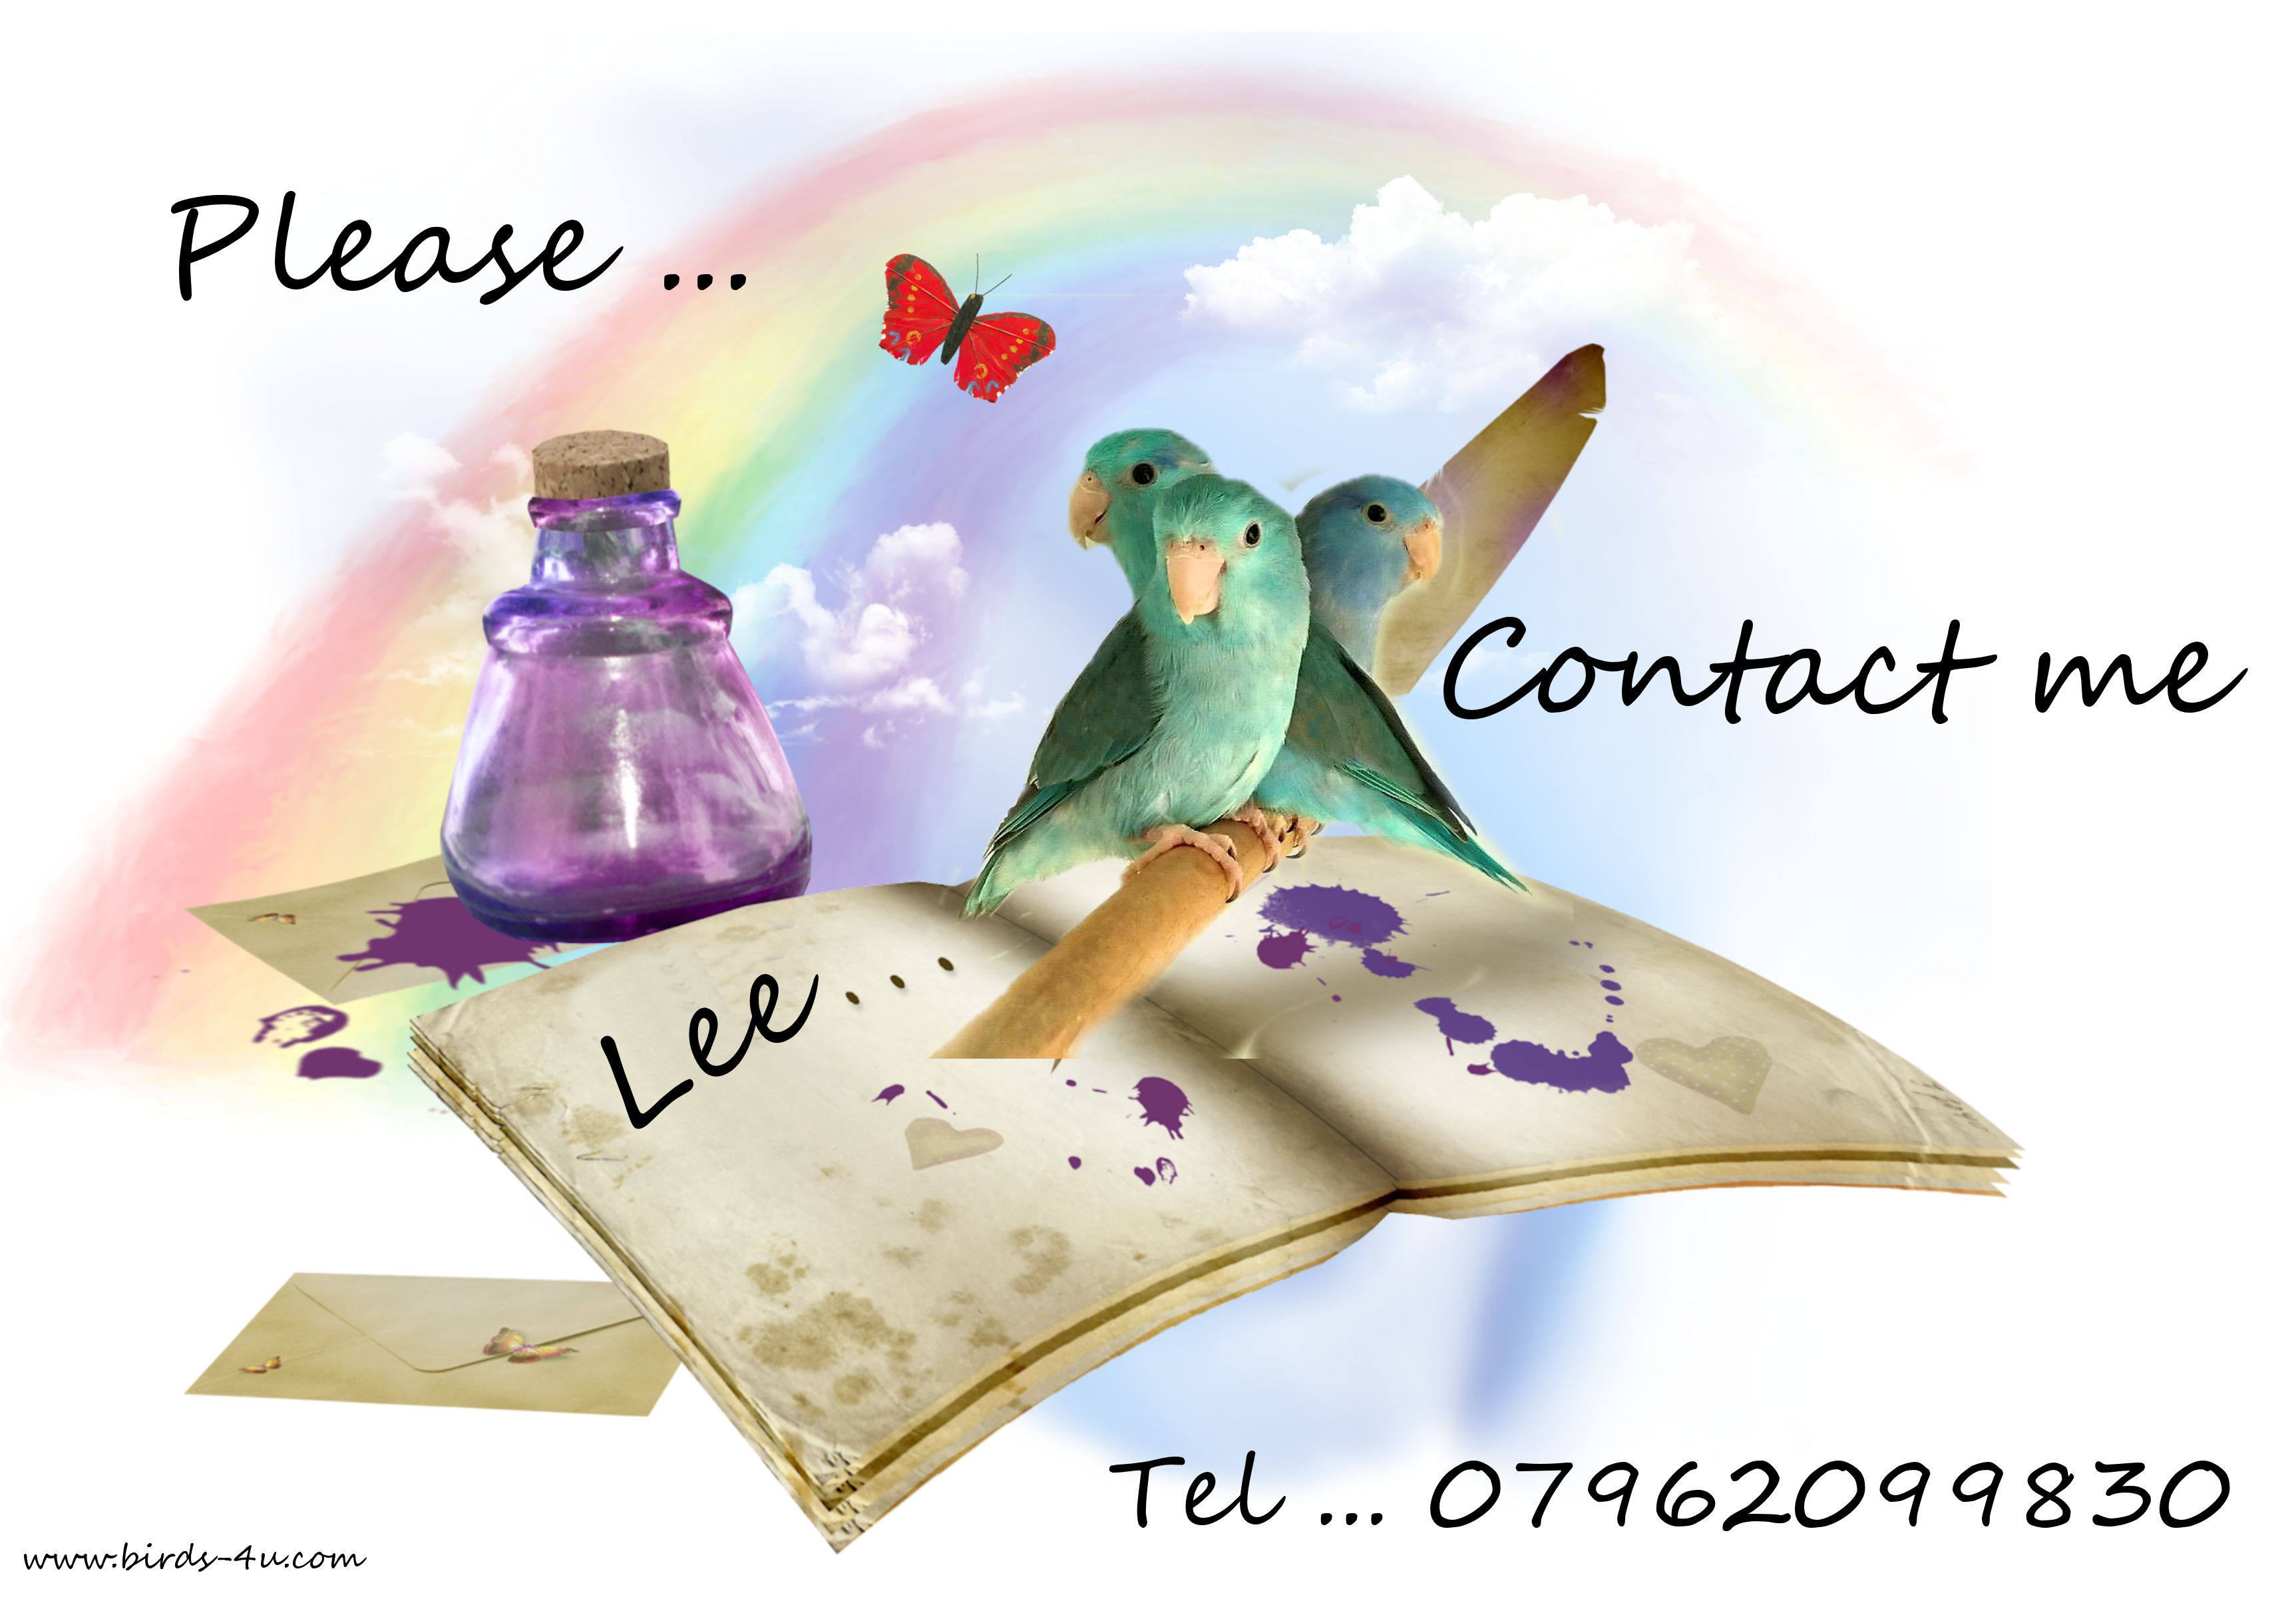 Contact us Lee